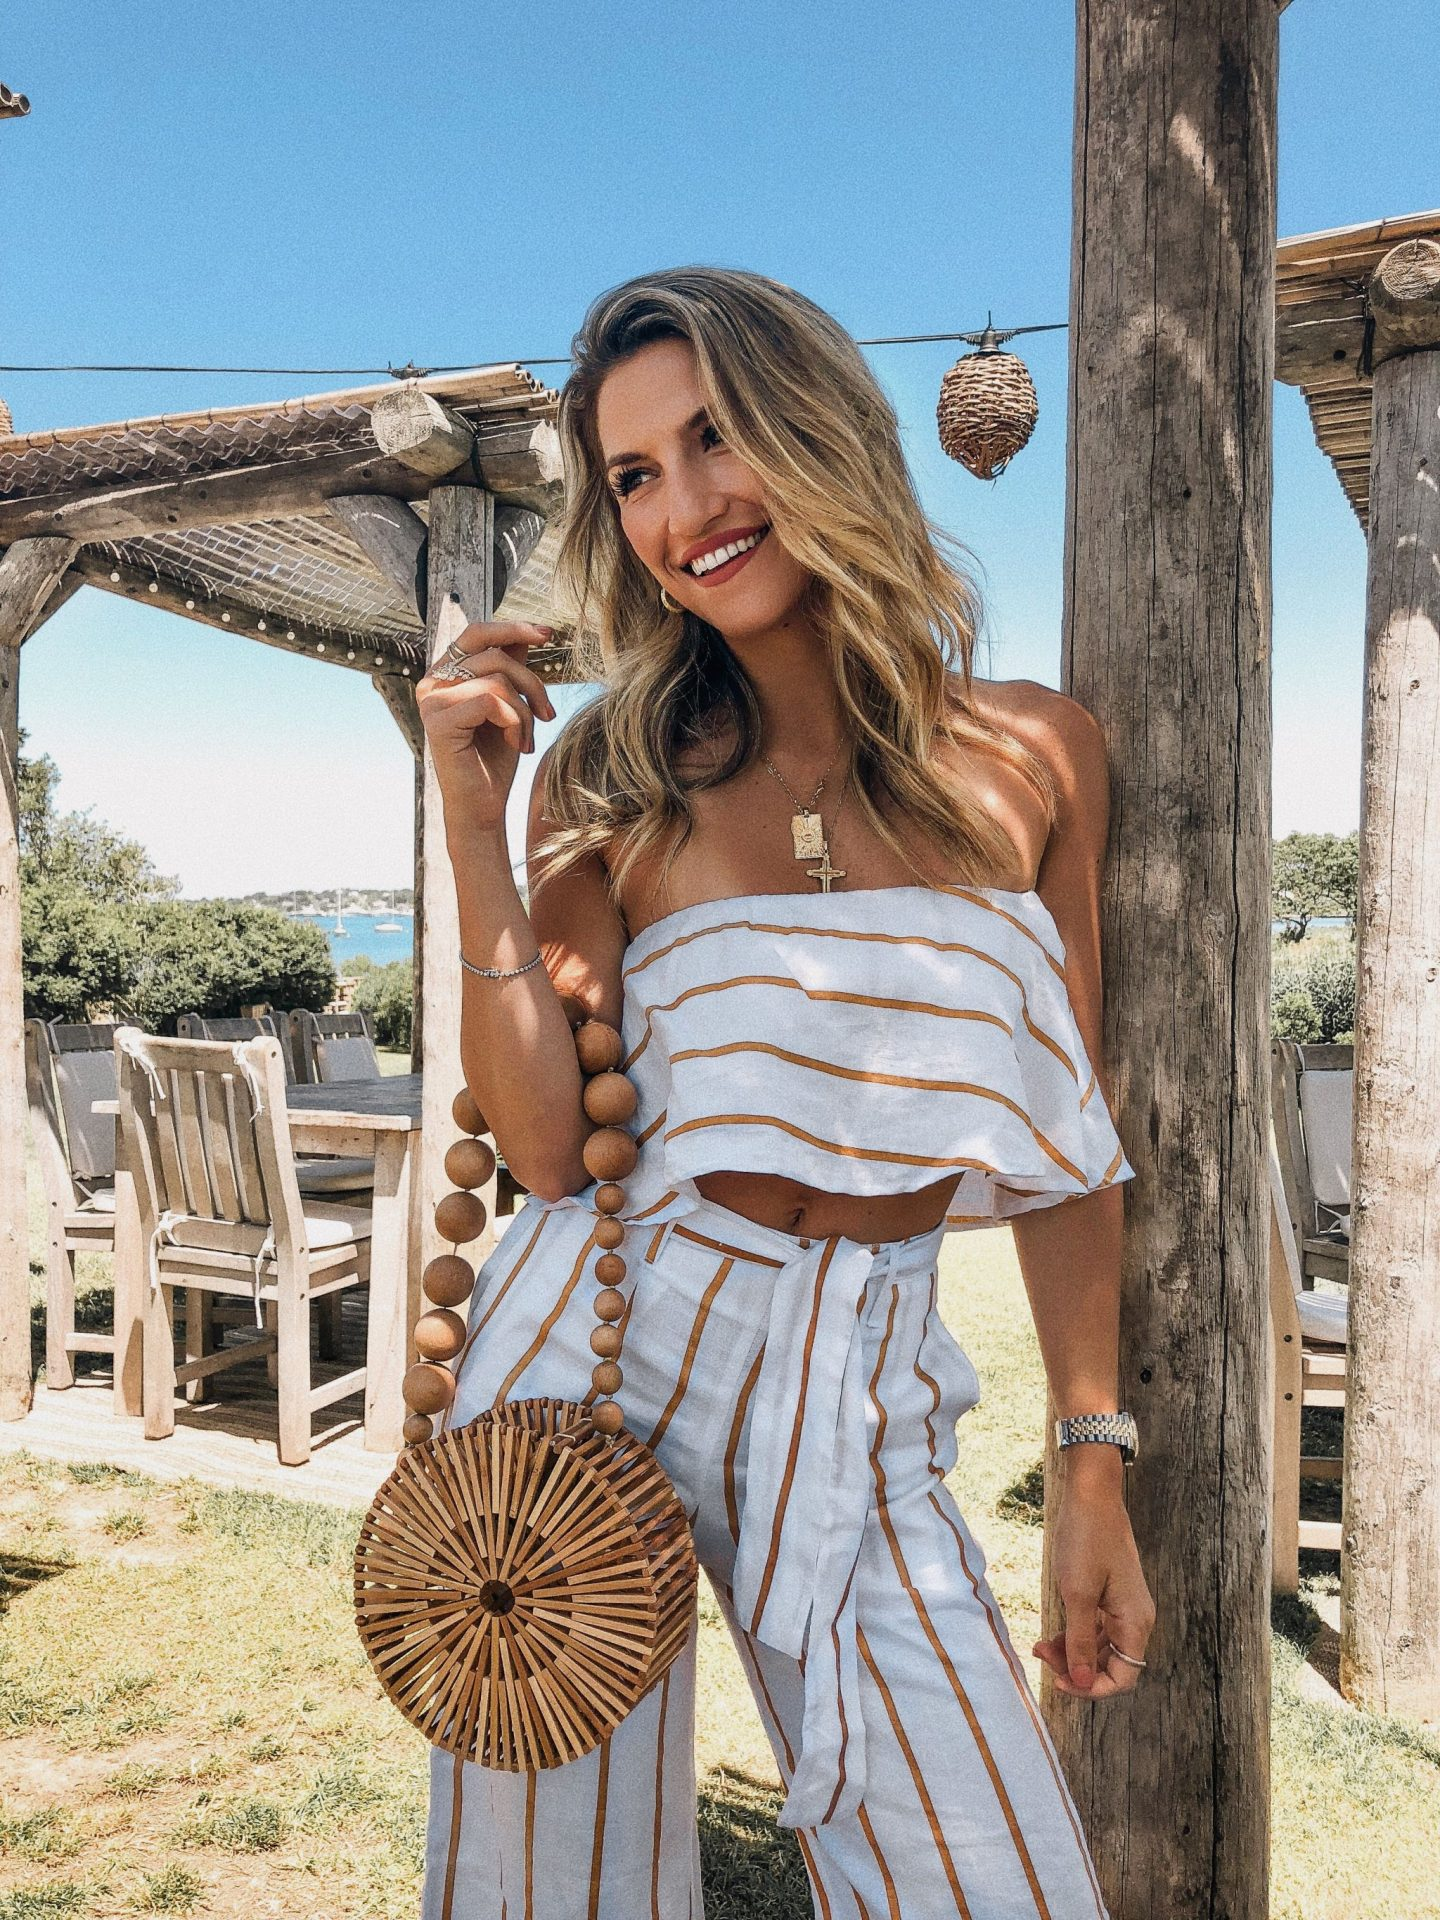 Cassandra DiMicco, Cass DiMicco, Dressed For Dreams, NYC, New York City, New York, Street Style NYC, Street Style 2018, NYC Street Style Street Style Outfits, 2018 Trends, NYC Fashion Blogger, NYC to do list, NYC to do, NYC bucket list, NYC Instagram Spots, Crows Nest Montauk, The Hamptons, Cult Gaia, Cult Gaia Circle Bamboo Bag, Faithfull The Brand, Lulus, Two Piece Set, Striped Culottes, Striped Tube Top, Summer Style, Summer Outfit Inspo, 2018 Trends, Hamptons Style, Hamptons Outfit